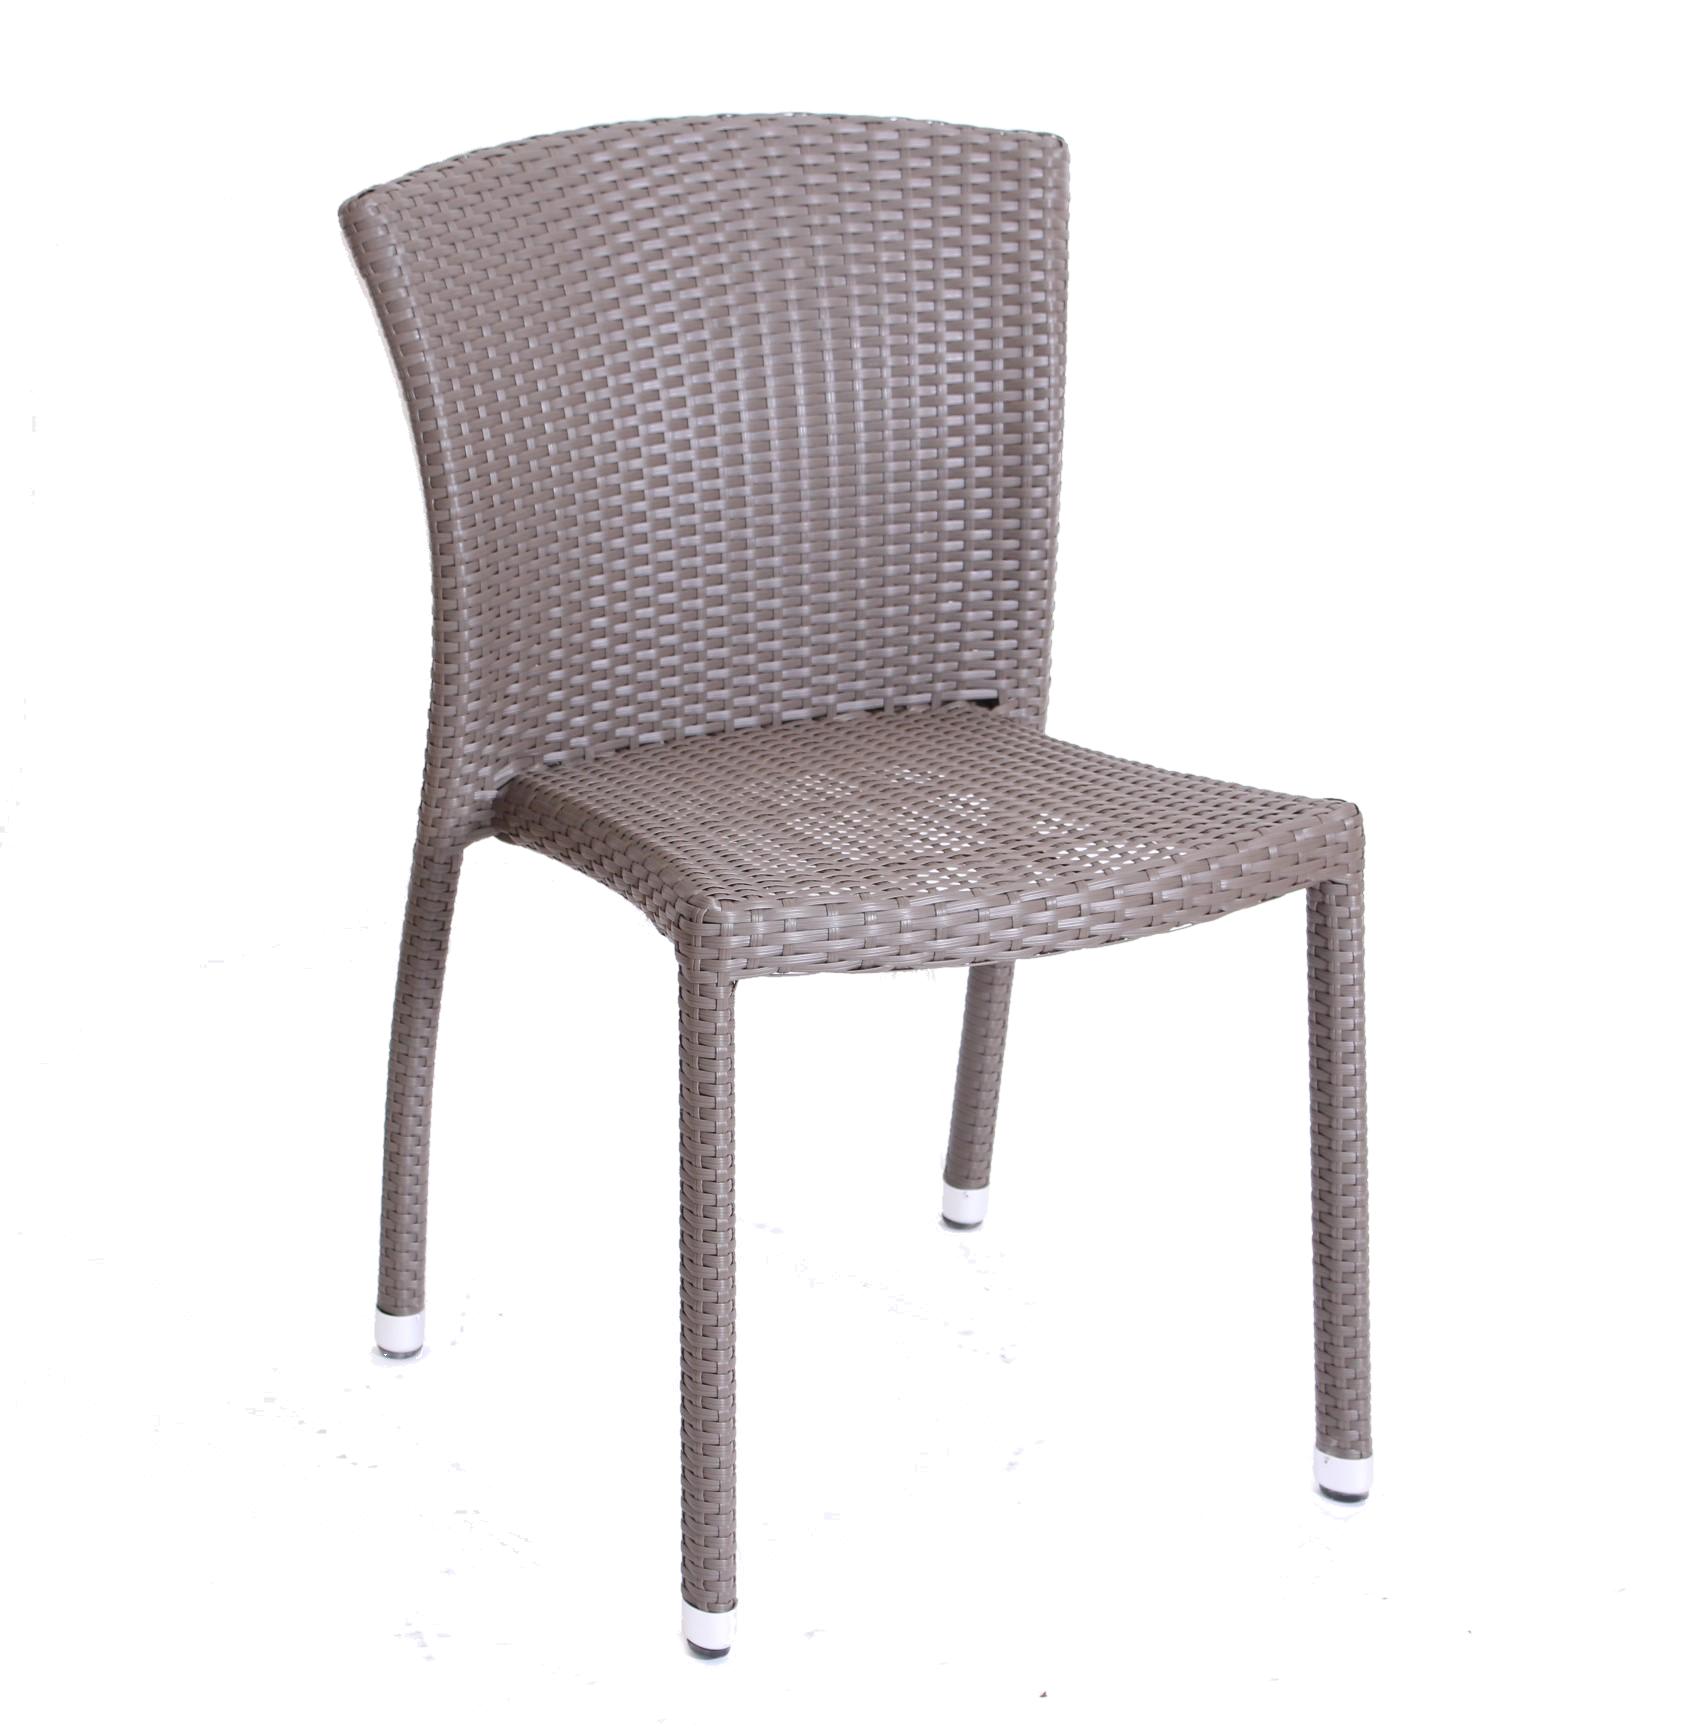 BIARRITZ SIDE CHAIR DK TAUPE WEAVE STBK